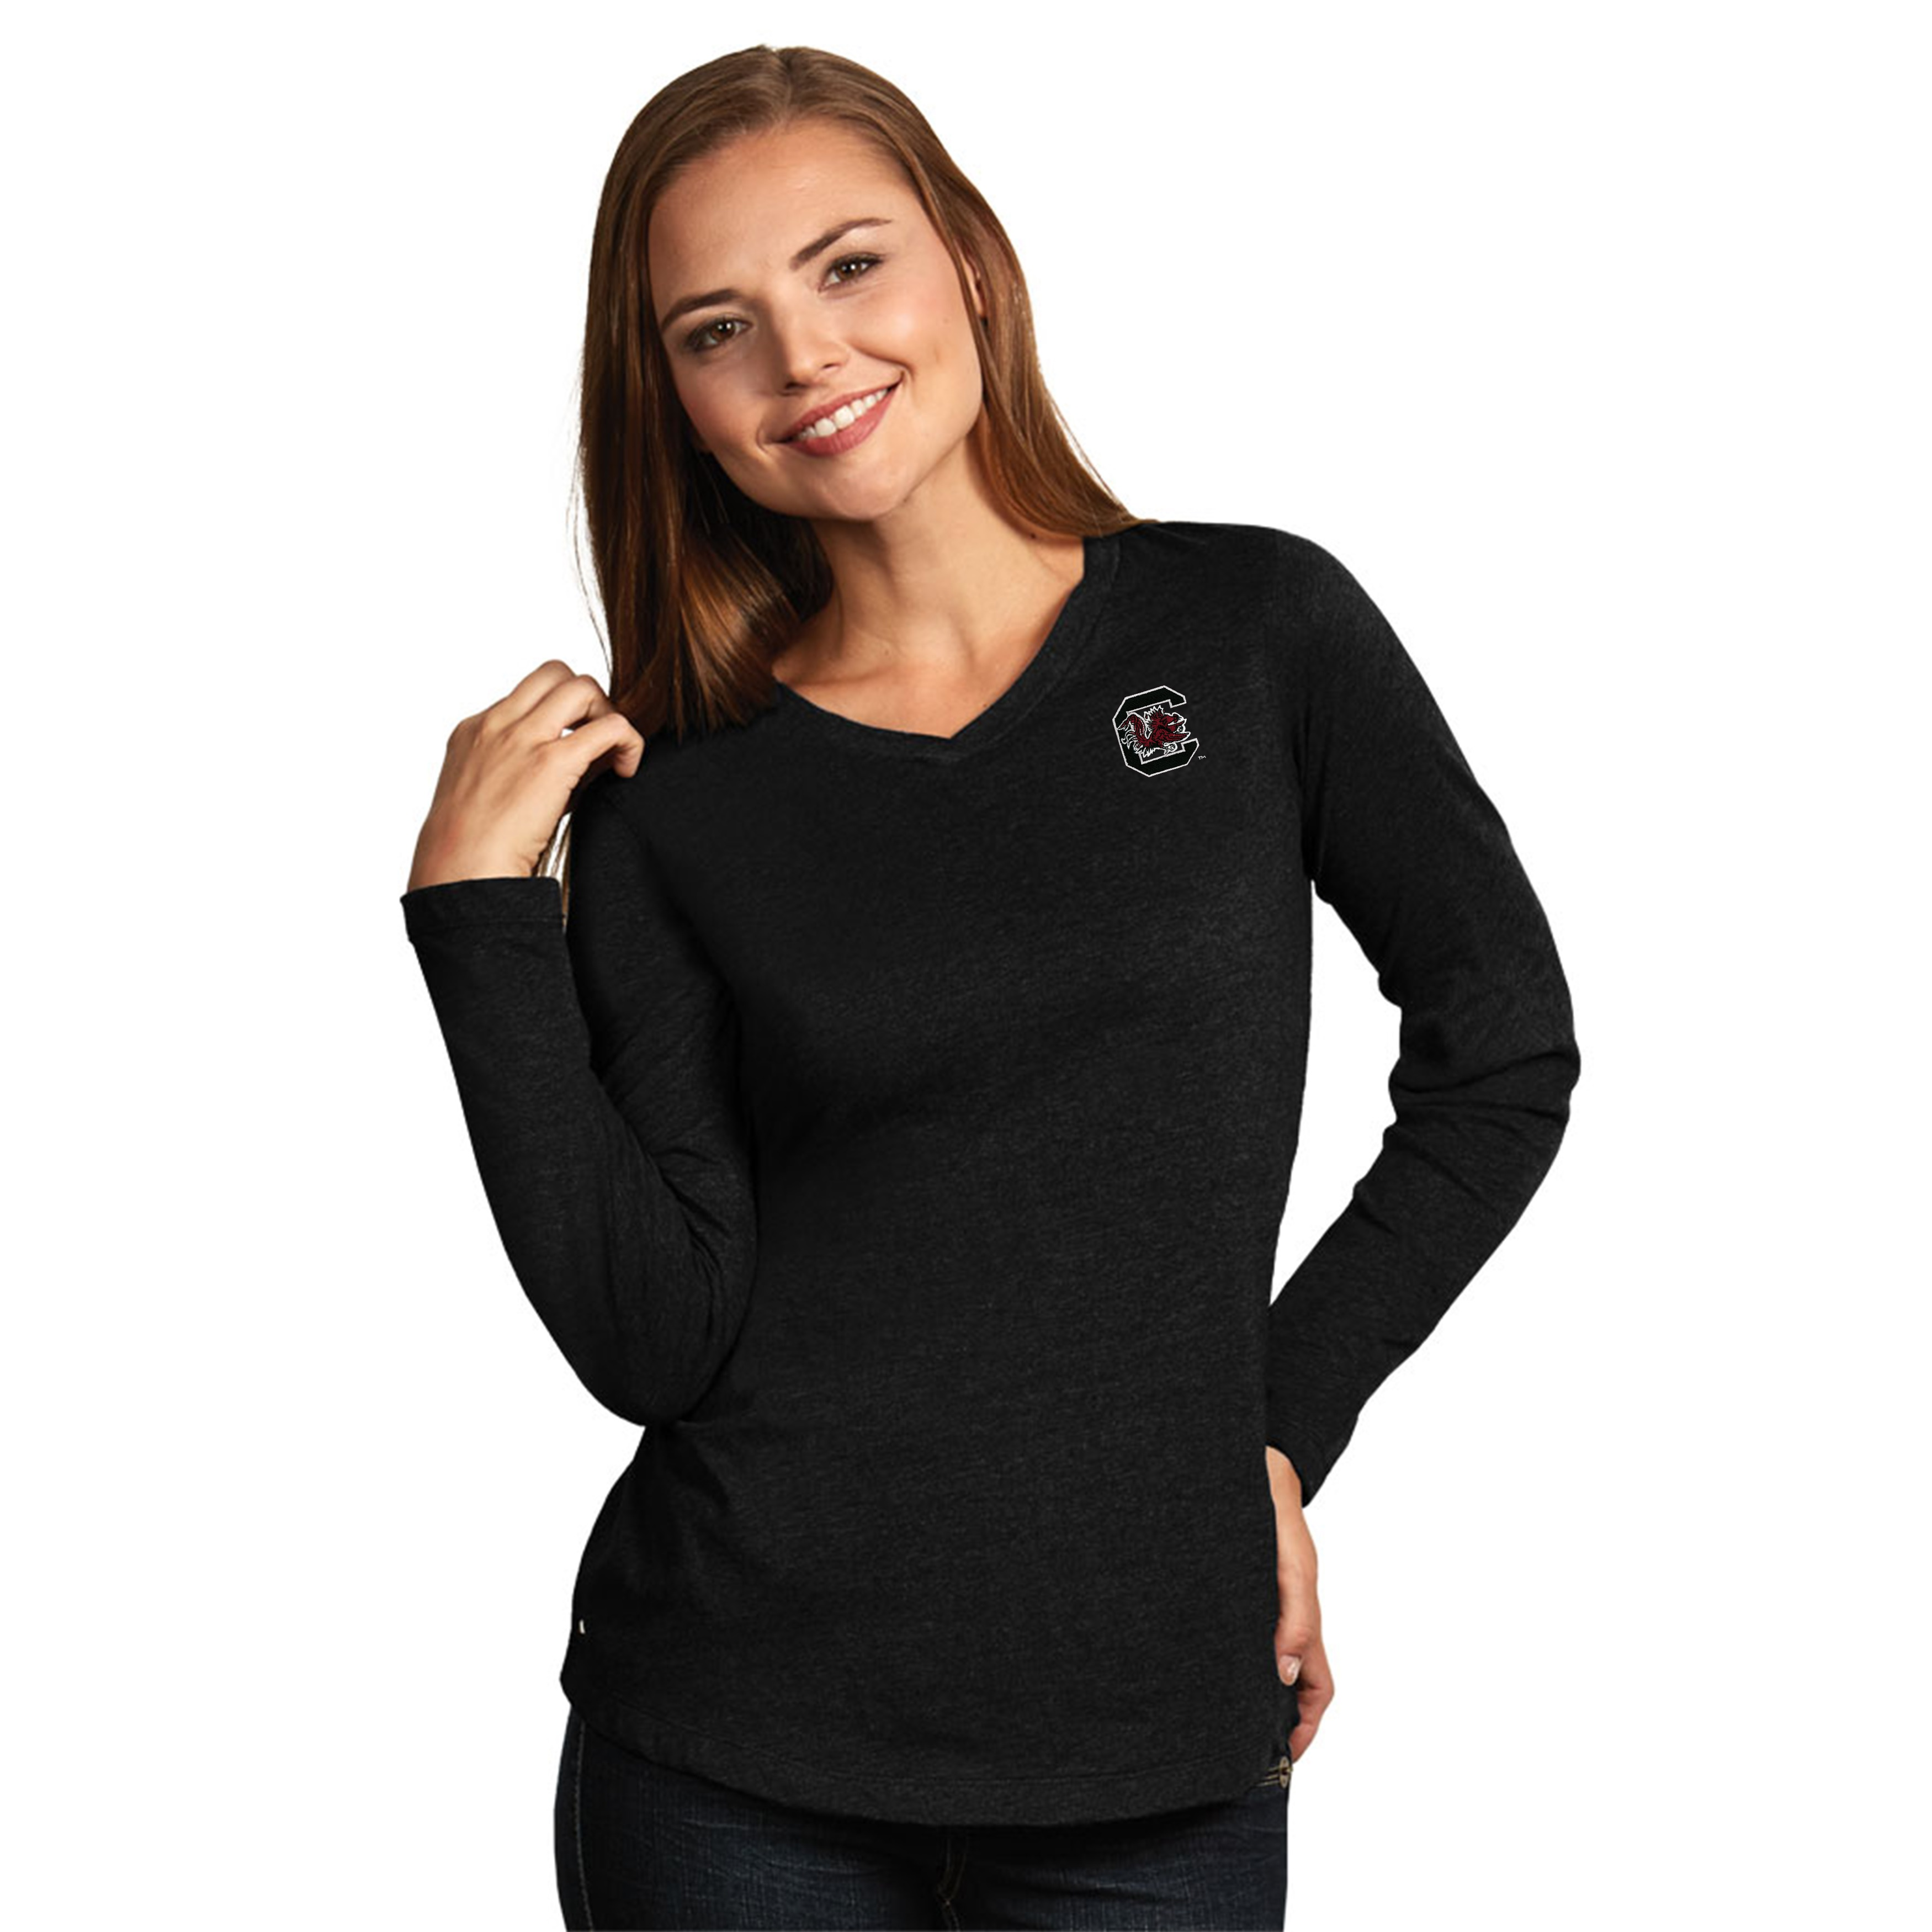 University of South Carolina Ladies Heather Jersey V-Neck Tee